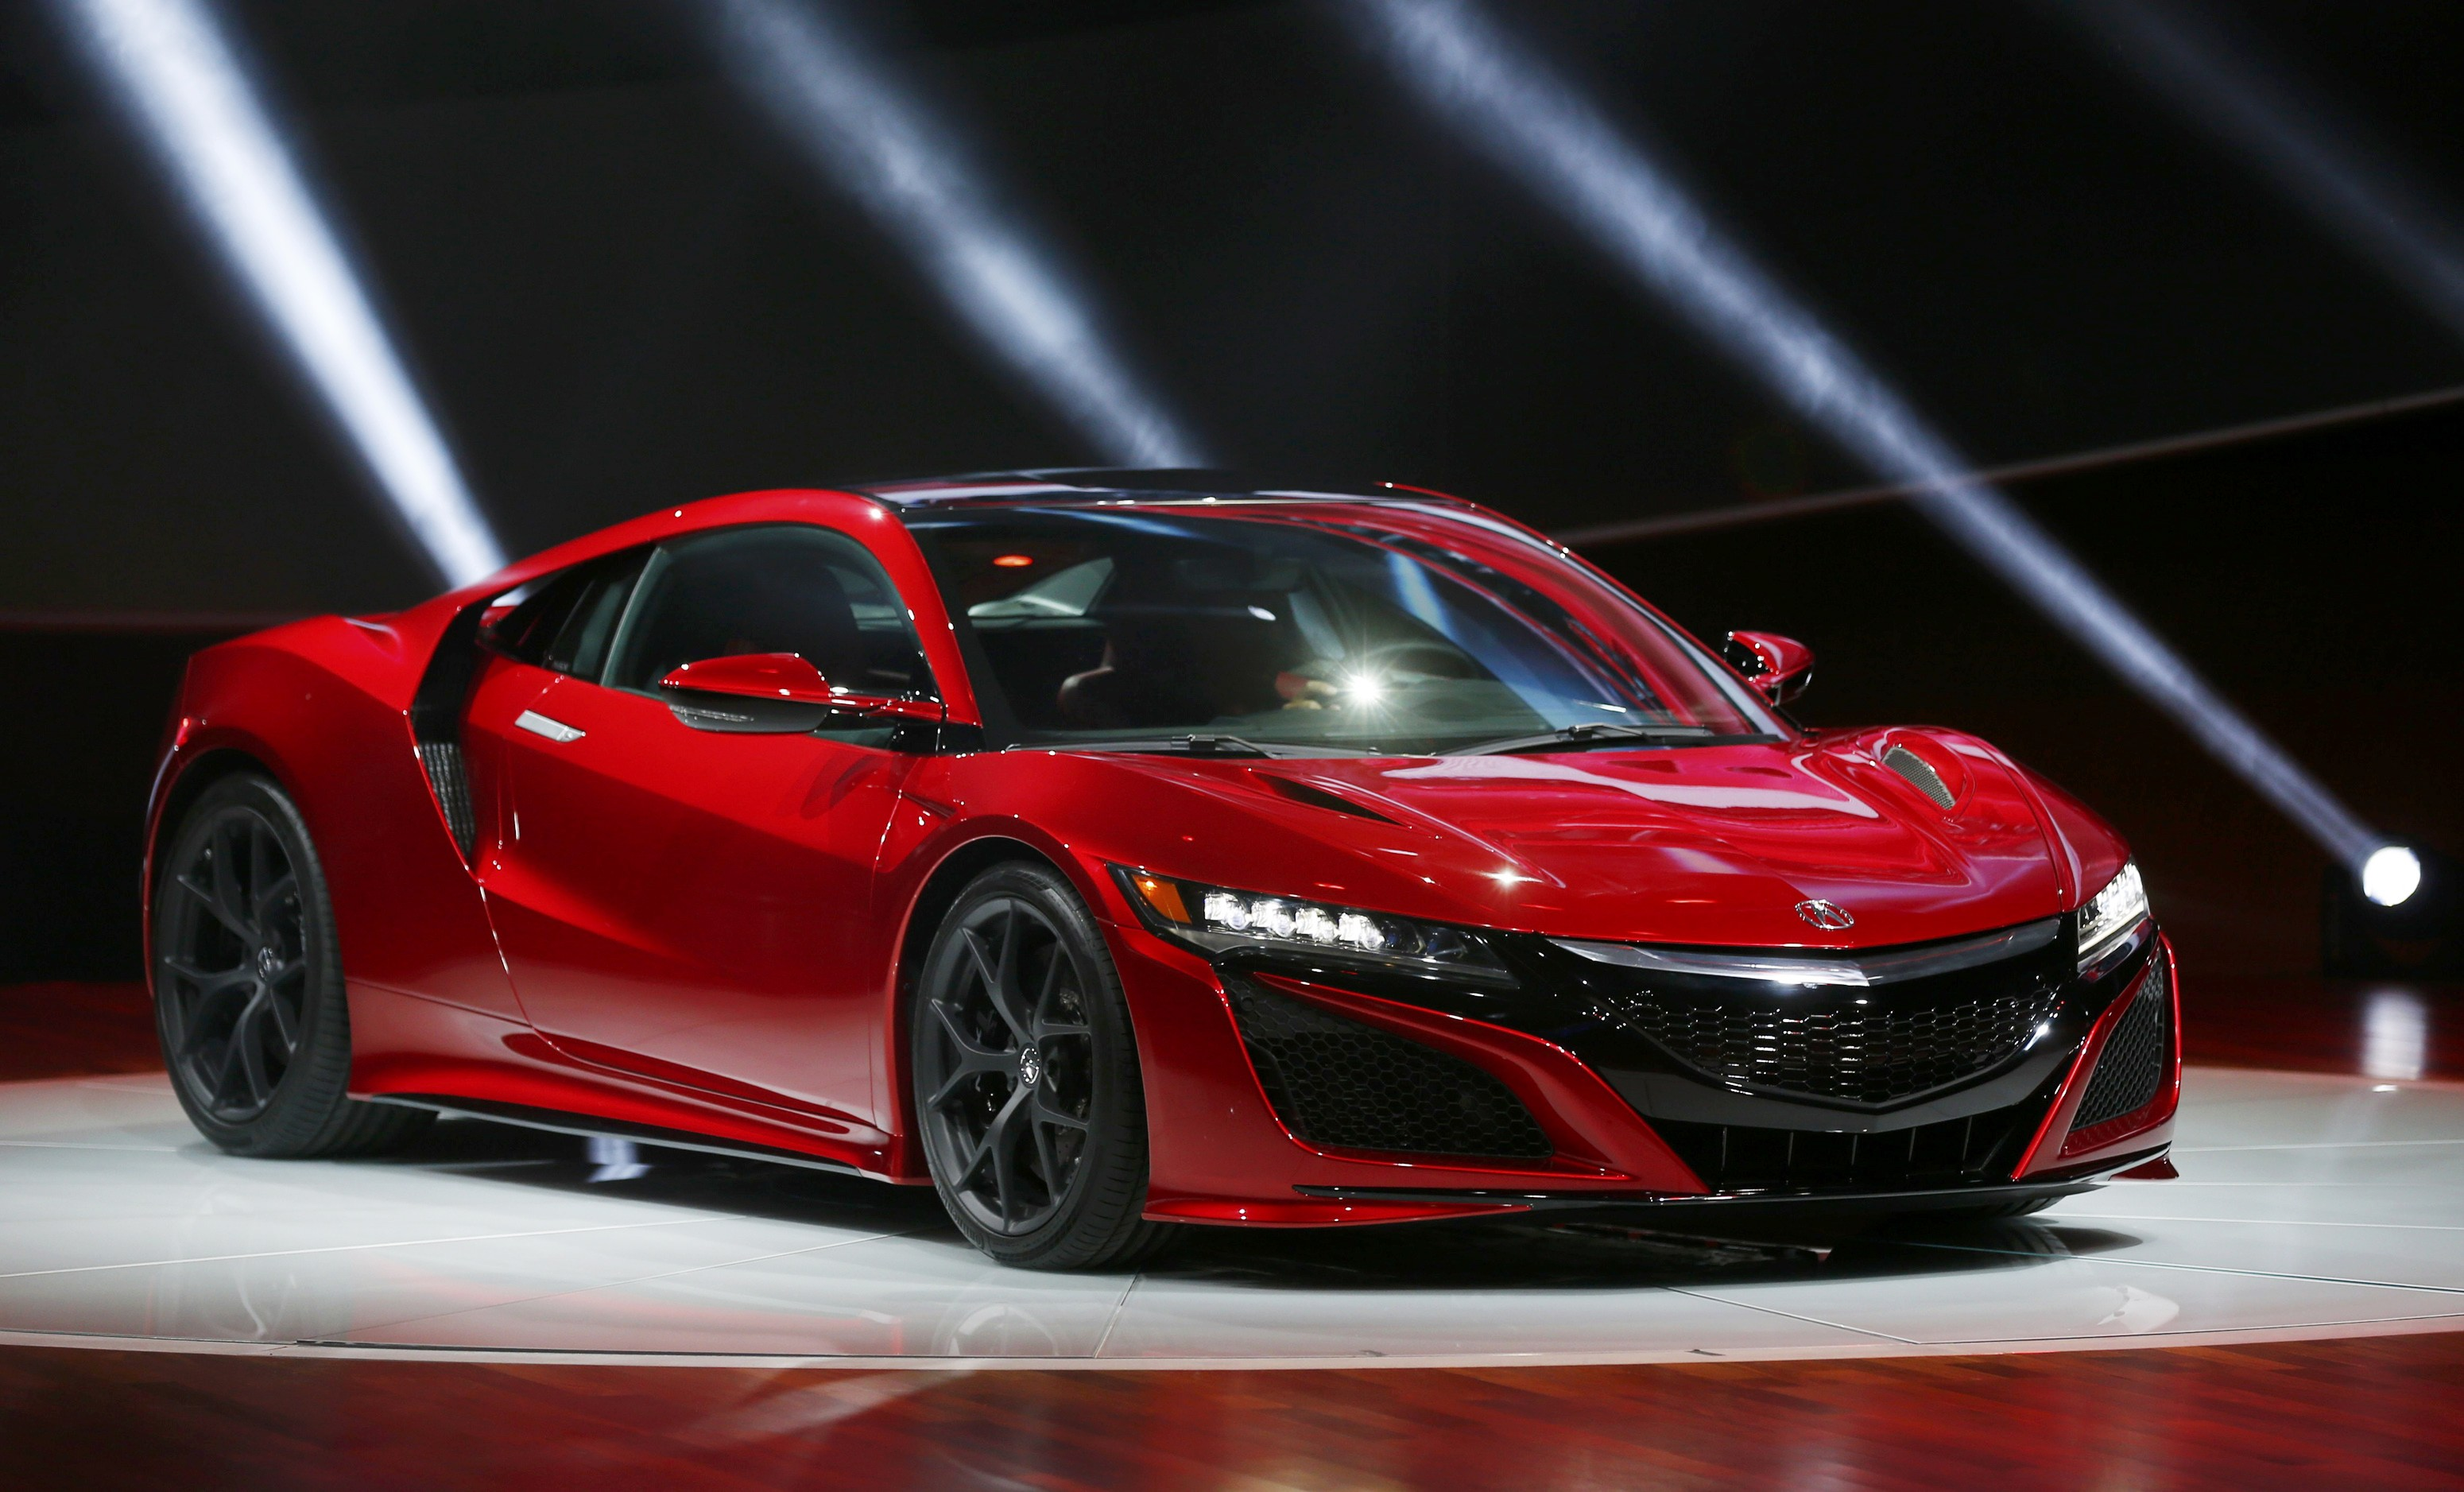 2015 Detroit Auto Show: Finally, Acura's NSX 'Human